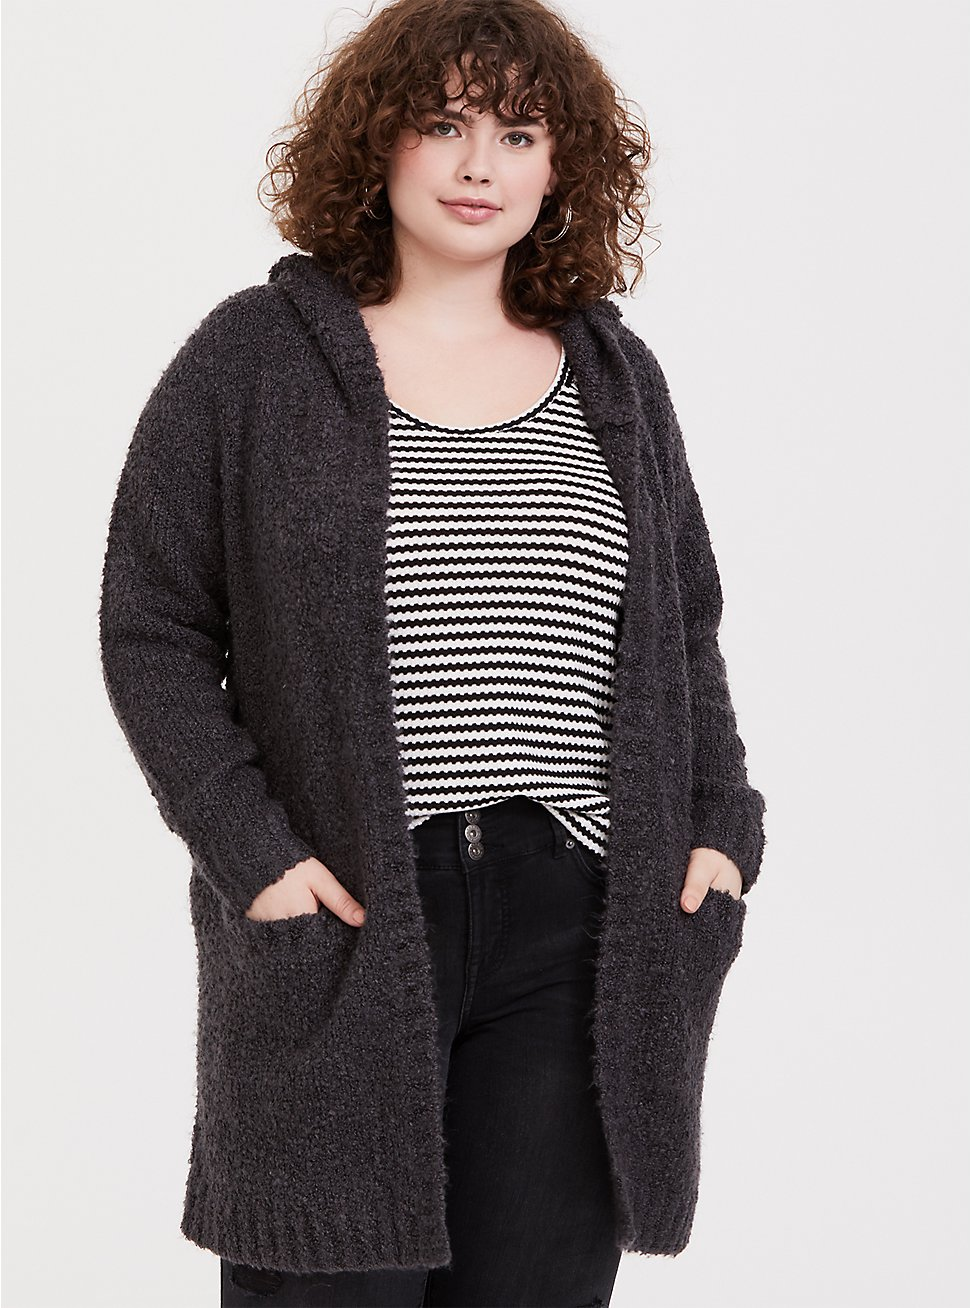 Charcoal Grey Boucle Hooded Cardigan Coat, , hi-res